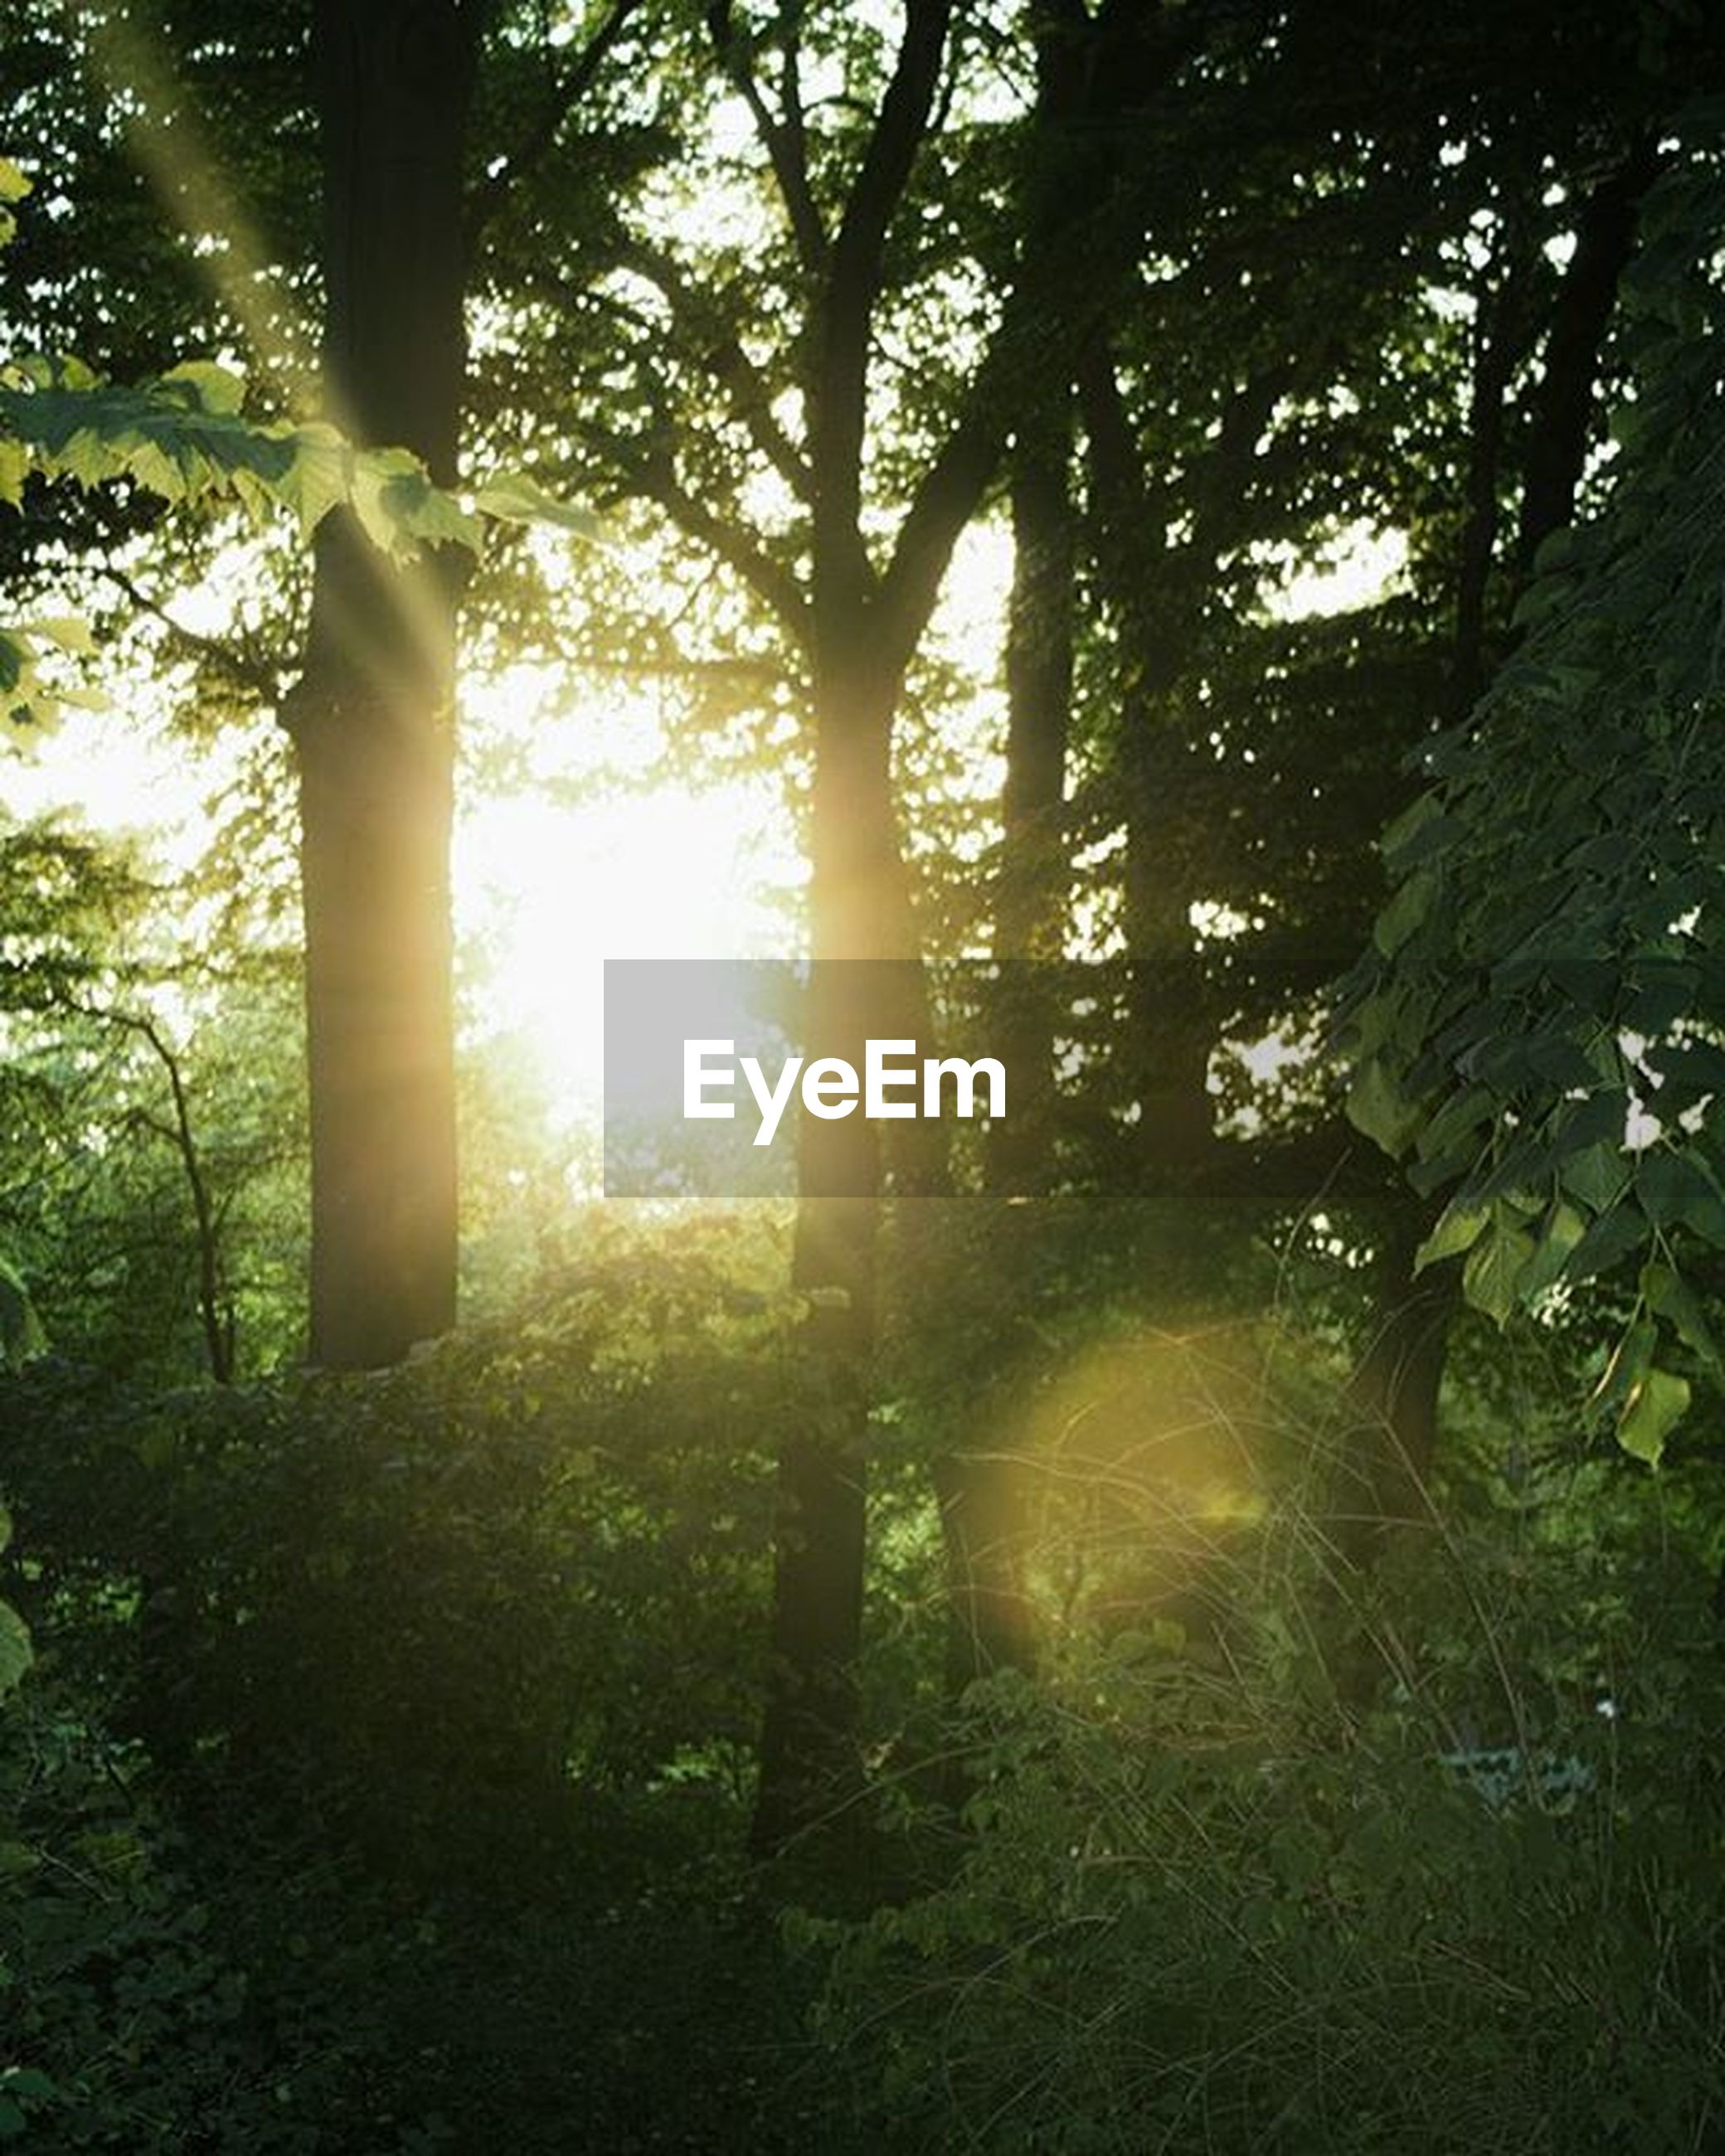 tree, sun, tree trunk, tranquility, sunlight, sunbeam, growth, forest, tranquil scene, lens flare, nature, beauty in nature, scenics, silhouette, woodland, back lit, branch, non-urban scene, landscape, sunset